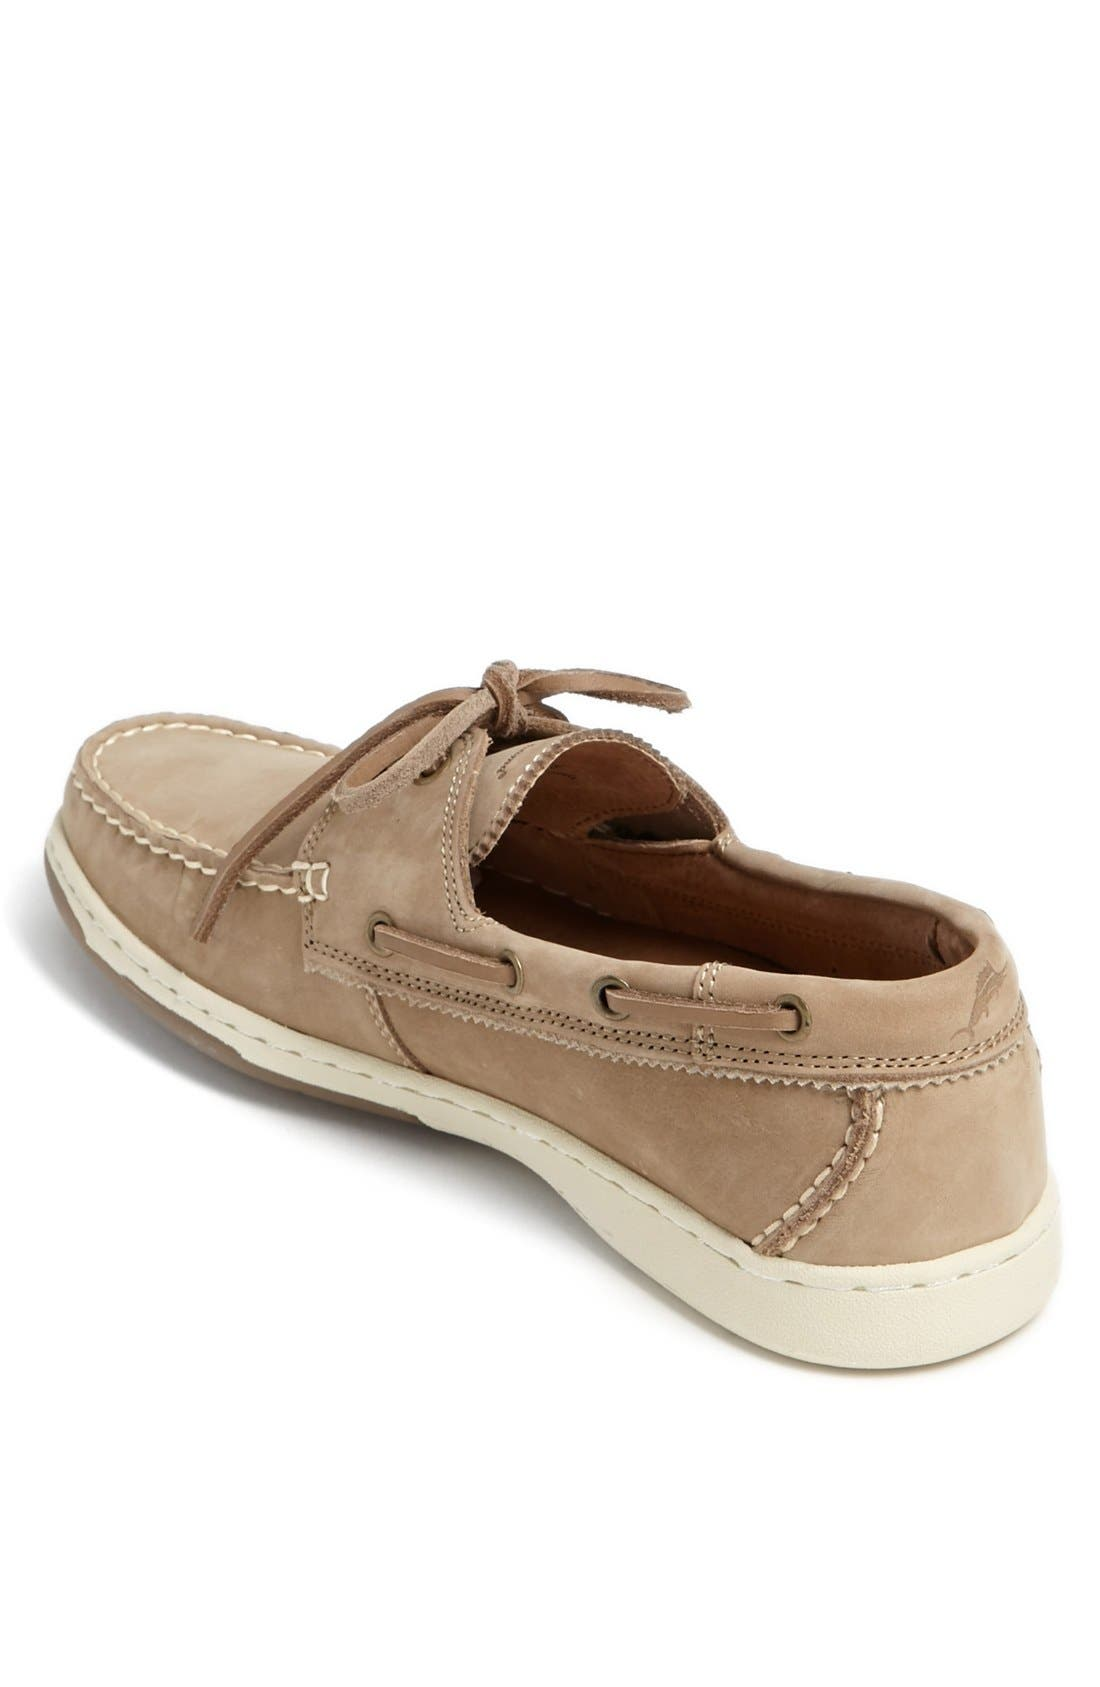 Alternate Image 2  - Tommy Bahama 'Arlington' Boat Shoe